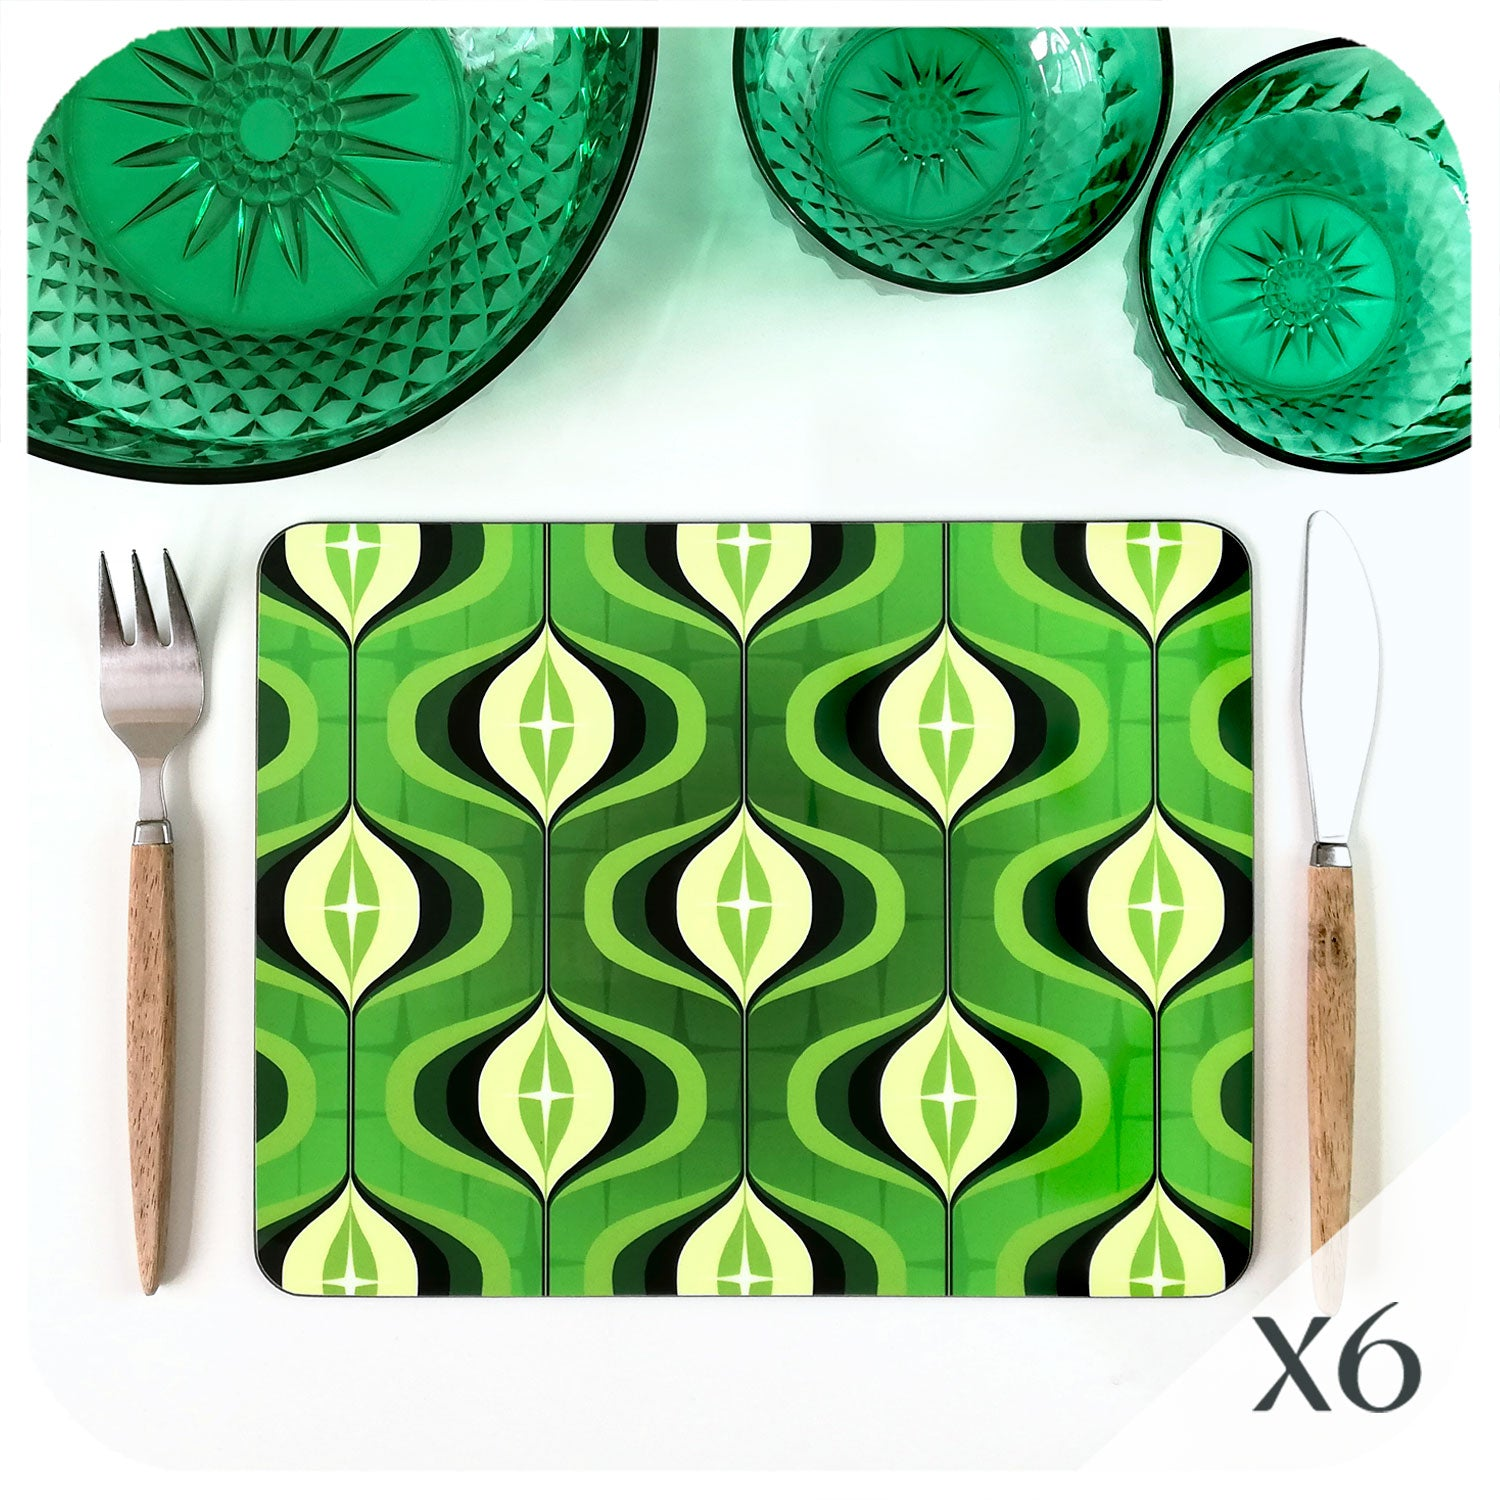 1970s Op Art Placemats in green, set of 6 | The Inkabilly Emporium